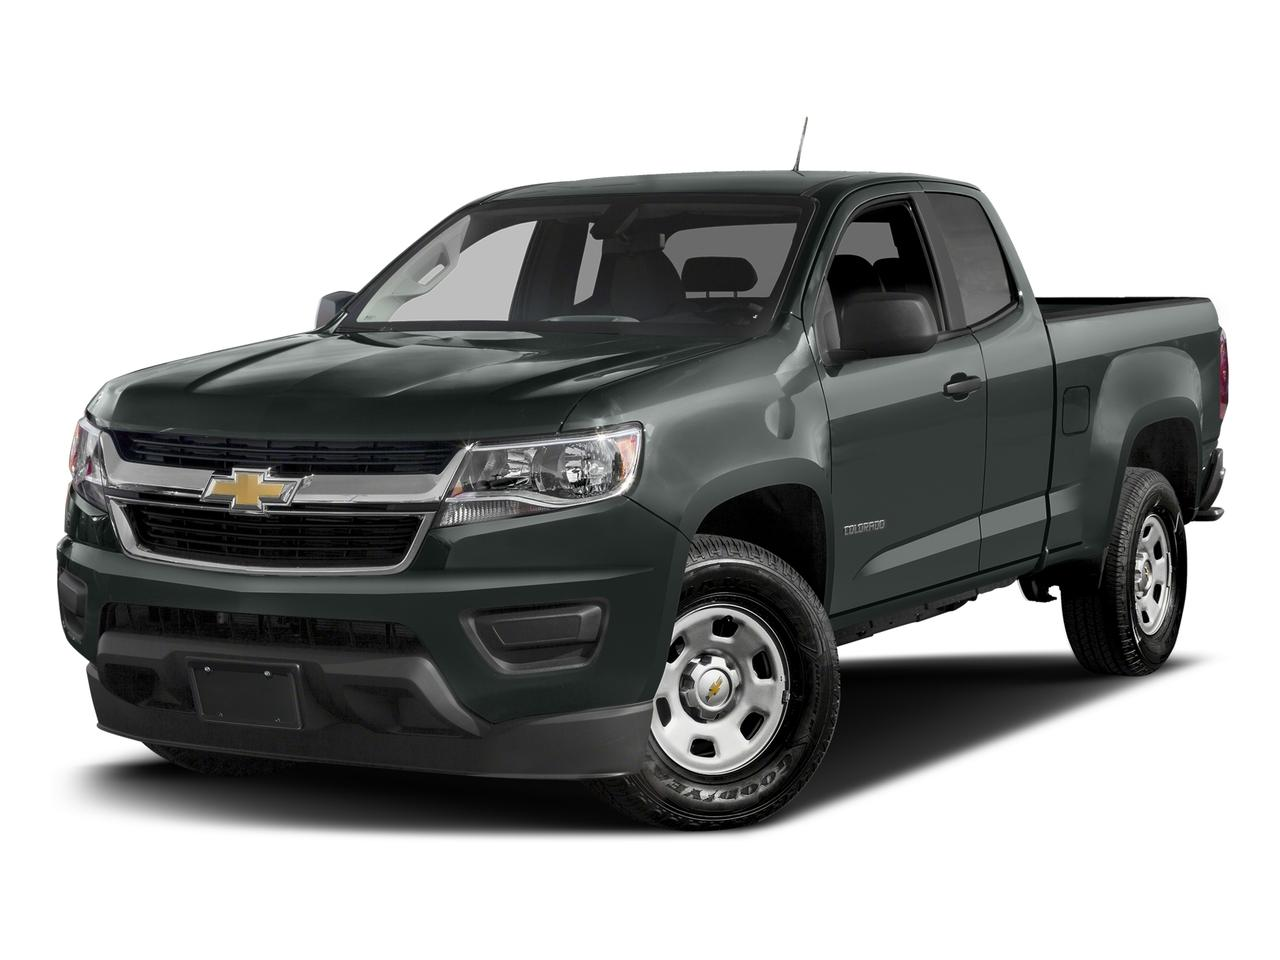 2017 Chevrolet Colorado Vehicle Photo in Mount Pleasant, PA 15666